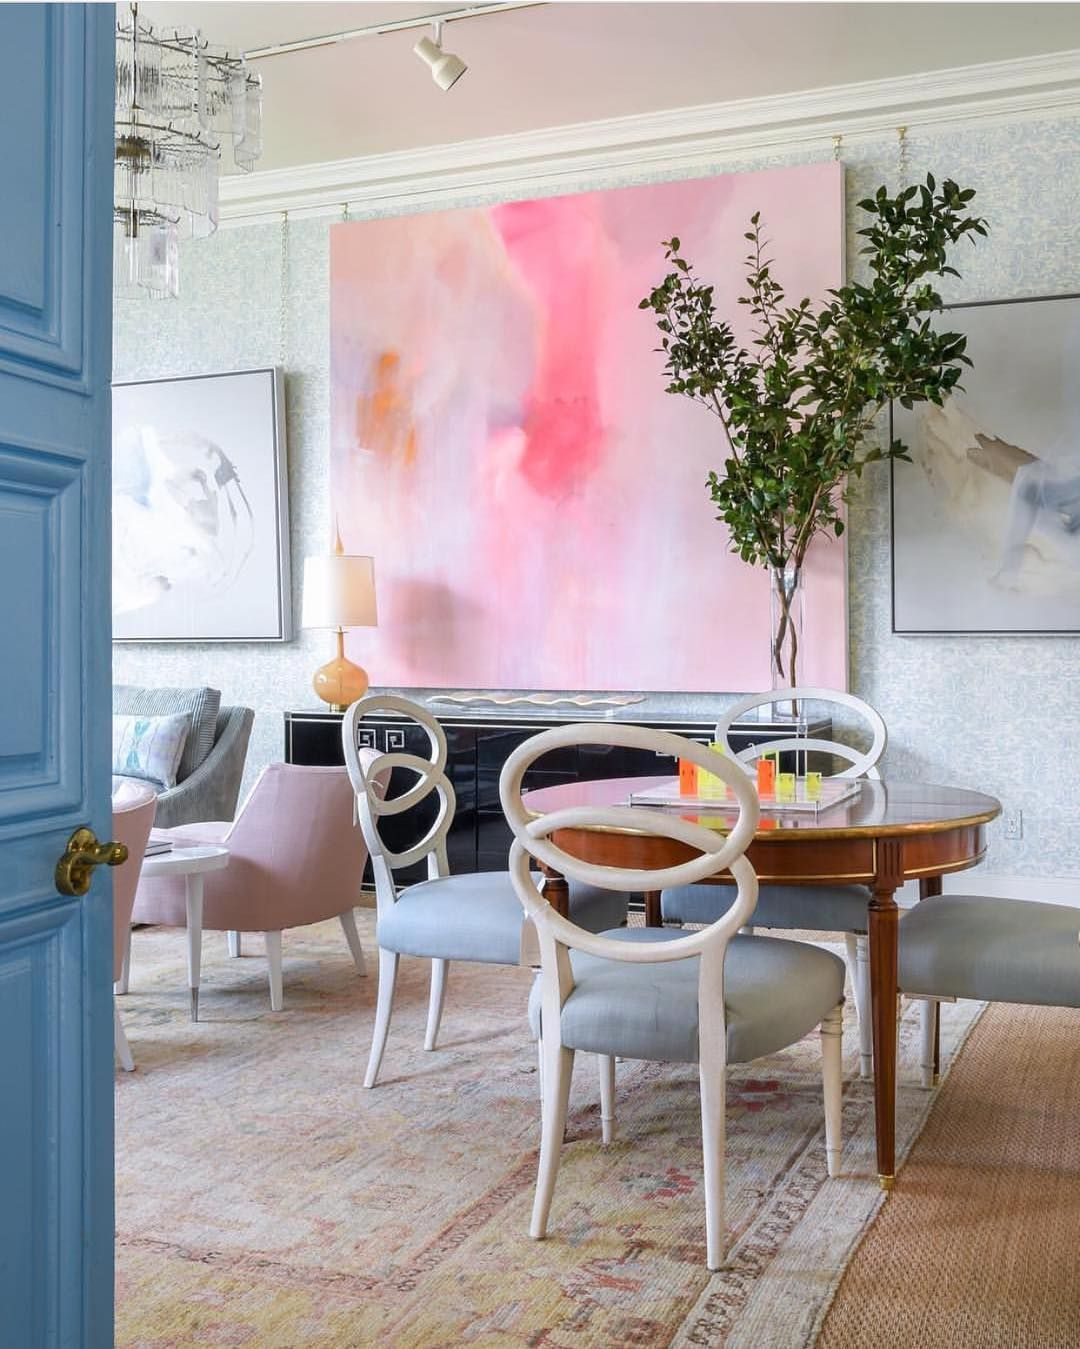 Colourful Interior | Office & Artist workplace | Pinterest ...